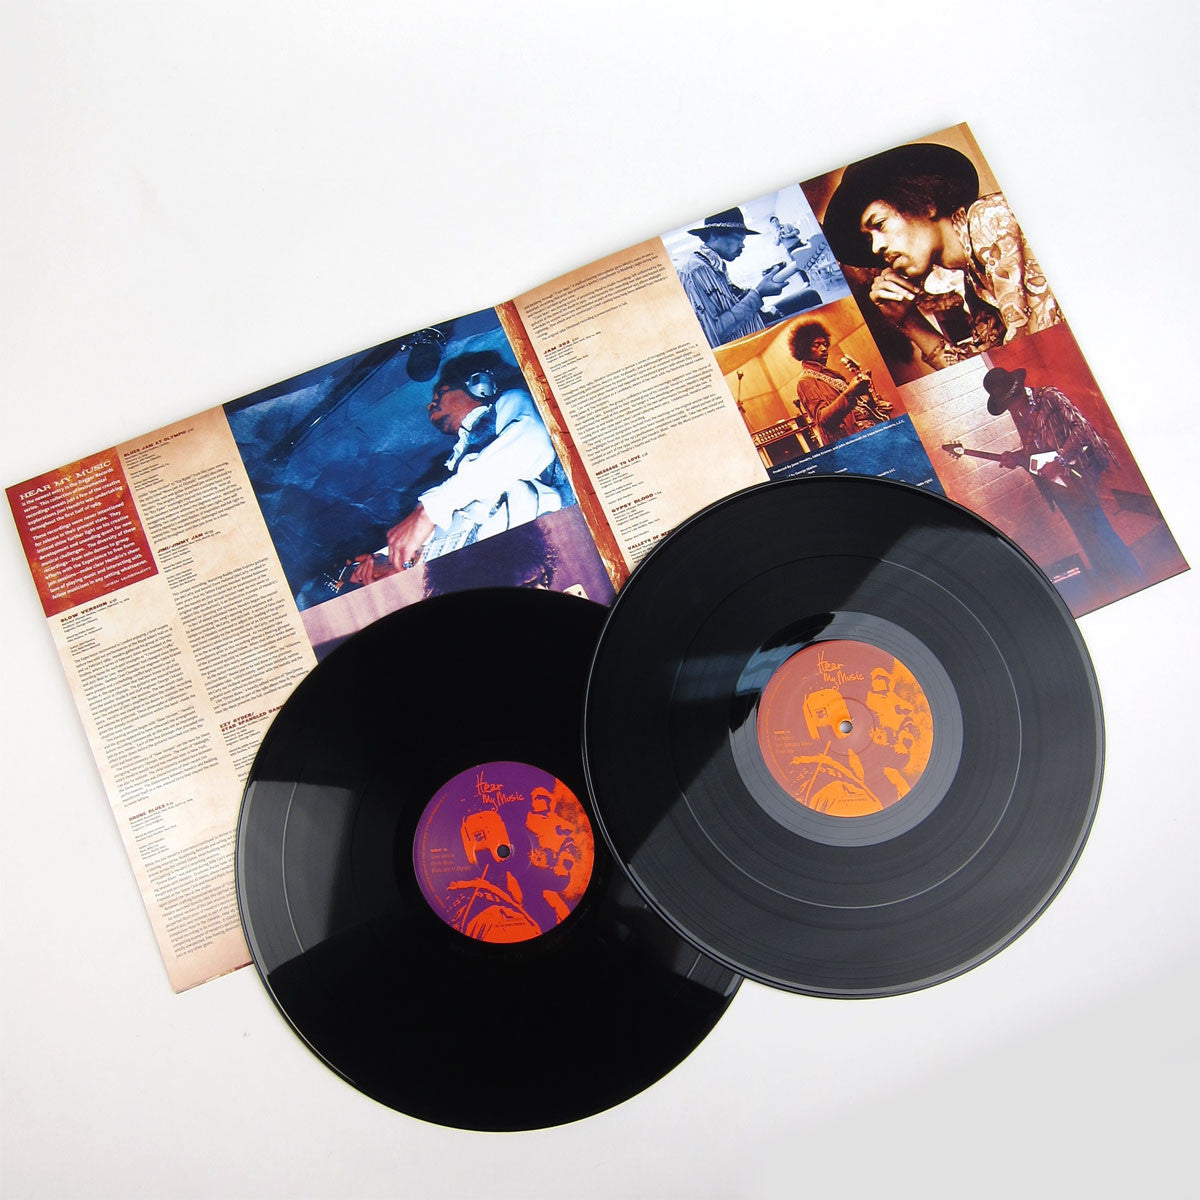 Jimi Hendrix: Hear My Music (200g) Vinyl 2LP (Record Store Day) detail